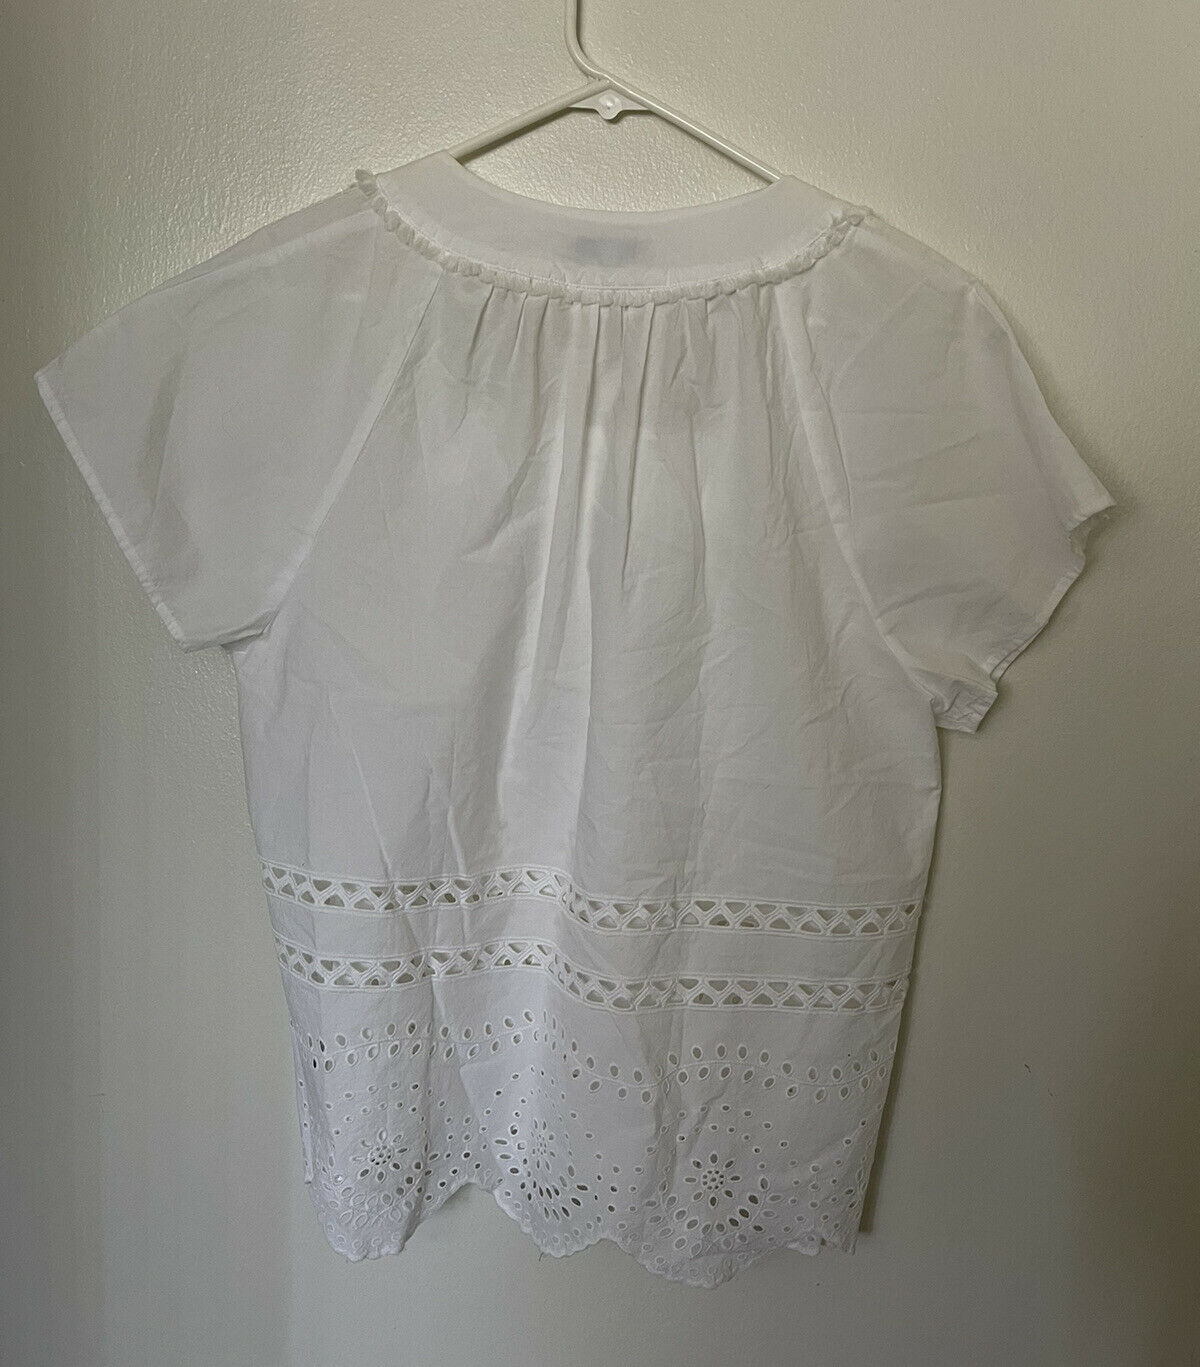 Madewell Top Womens Size L Cotton White Eyelet An… - image 4